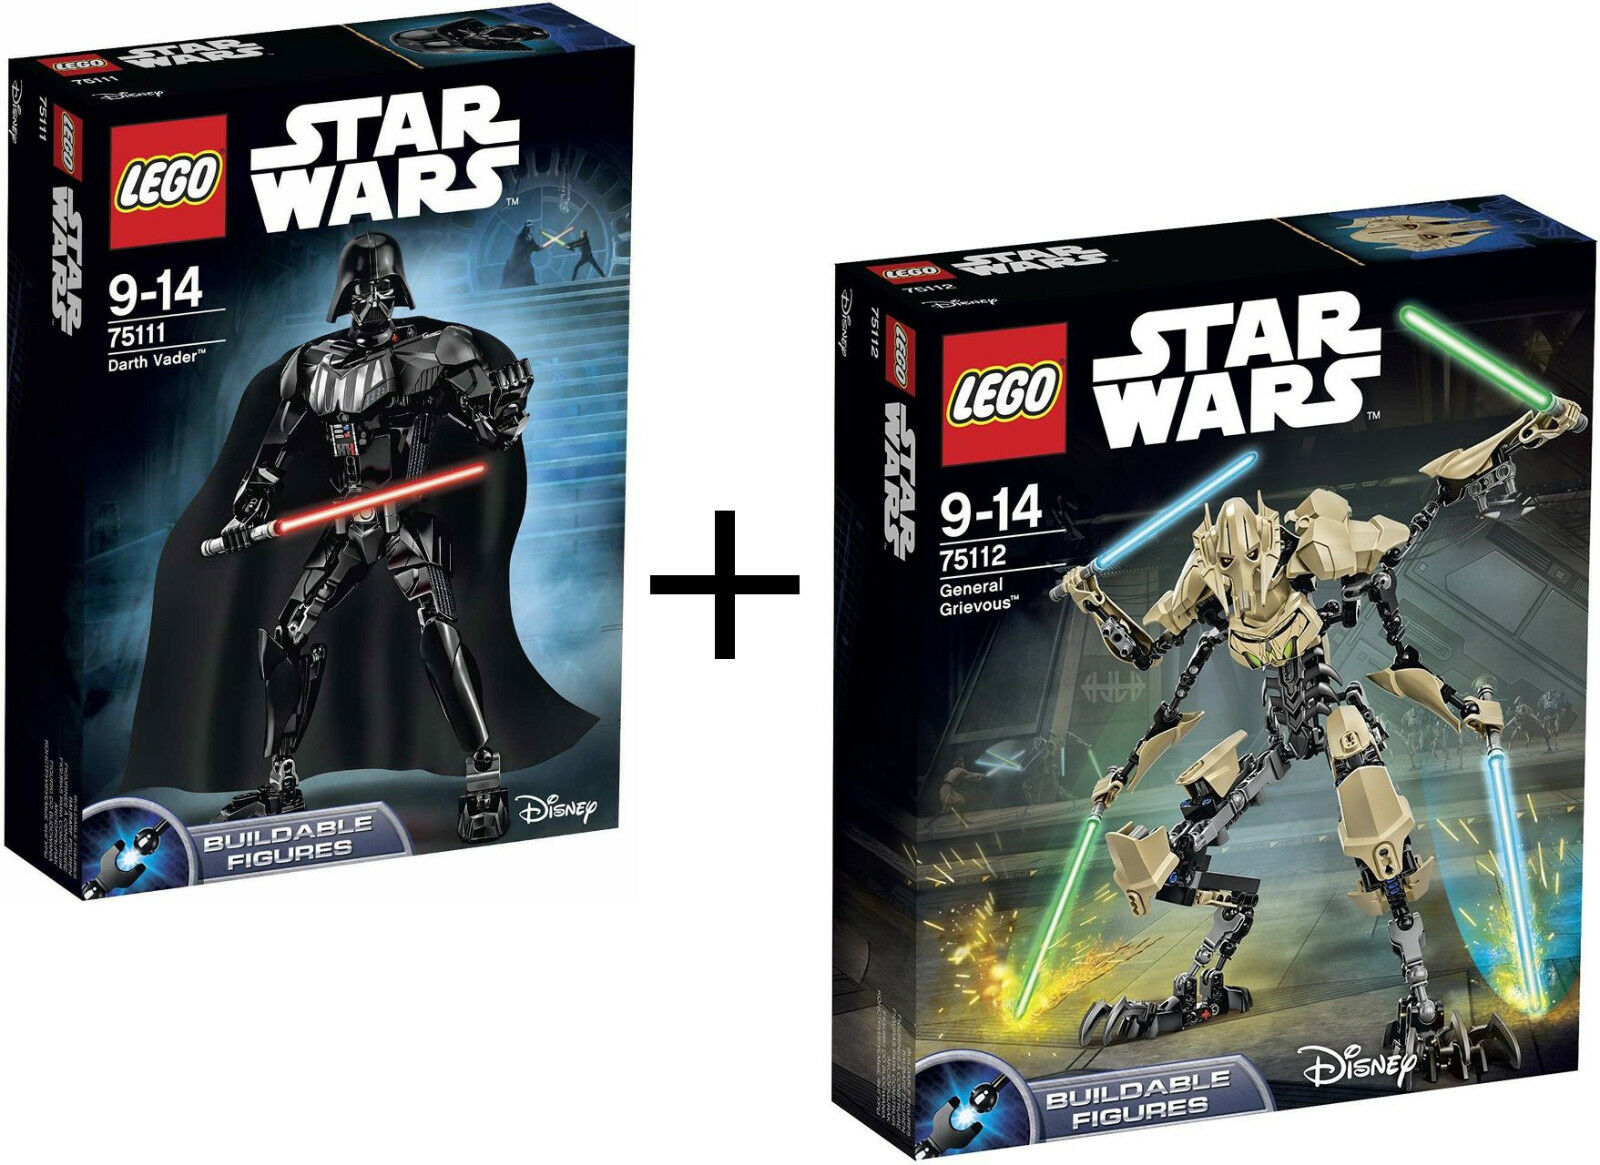 LEGO STAR WARS DARTH VADER 75111 + GENERAL GRIEVOUS 75112 - NUEVOS, SIN ABRIR